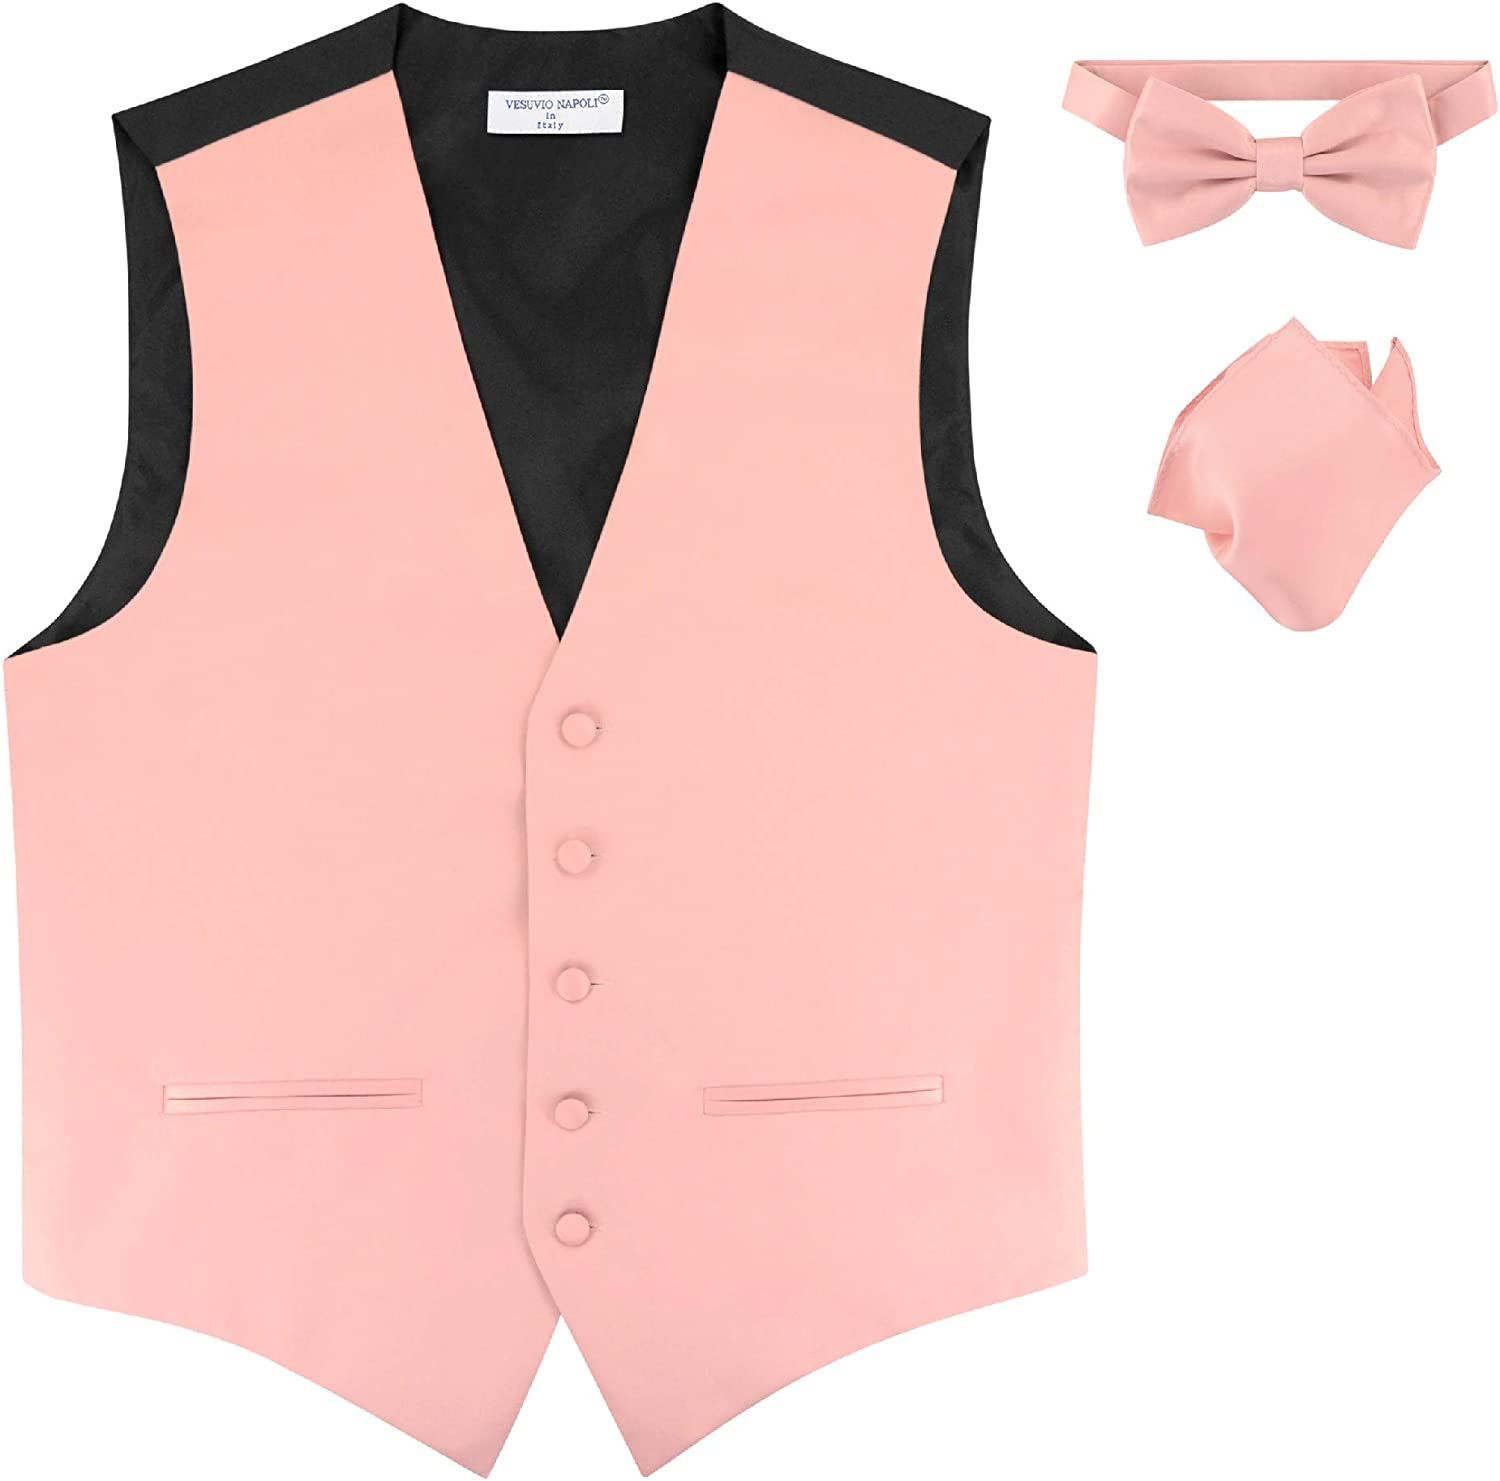 Mens Slim FIT Dress Vest Bowtie Solid Dusty Pink Color Bow Tie Handkerchief Set